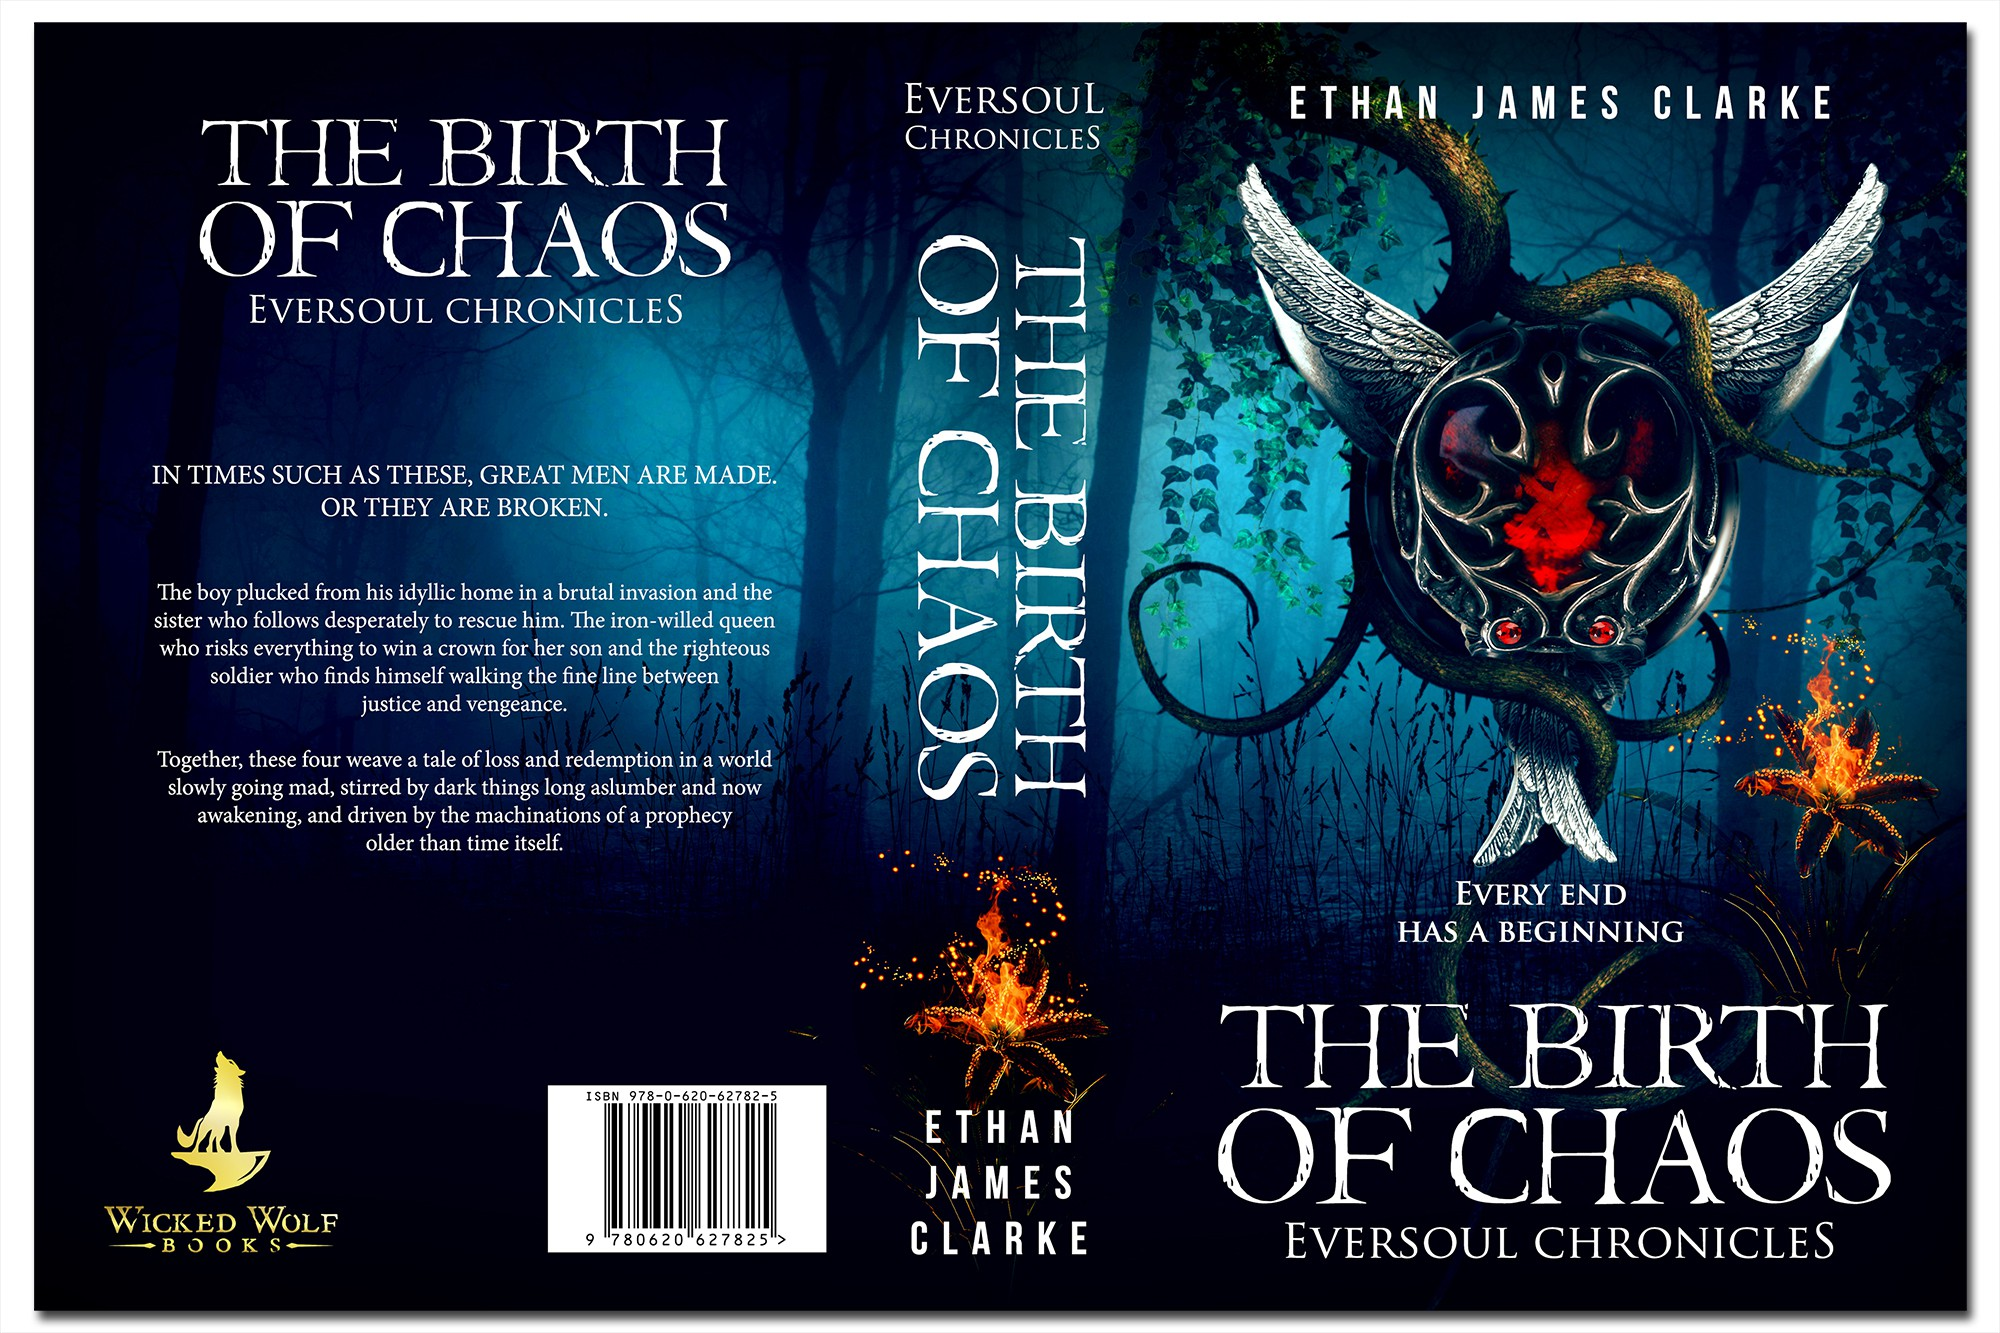 Create a must-read cover for epic fantasy The Birth of Chaos